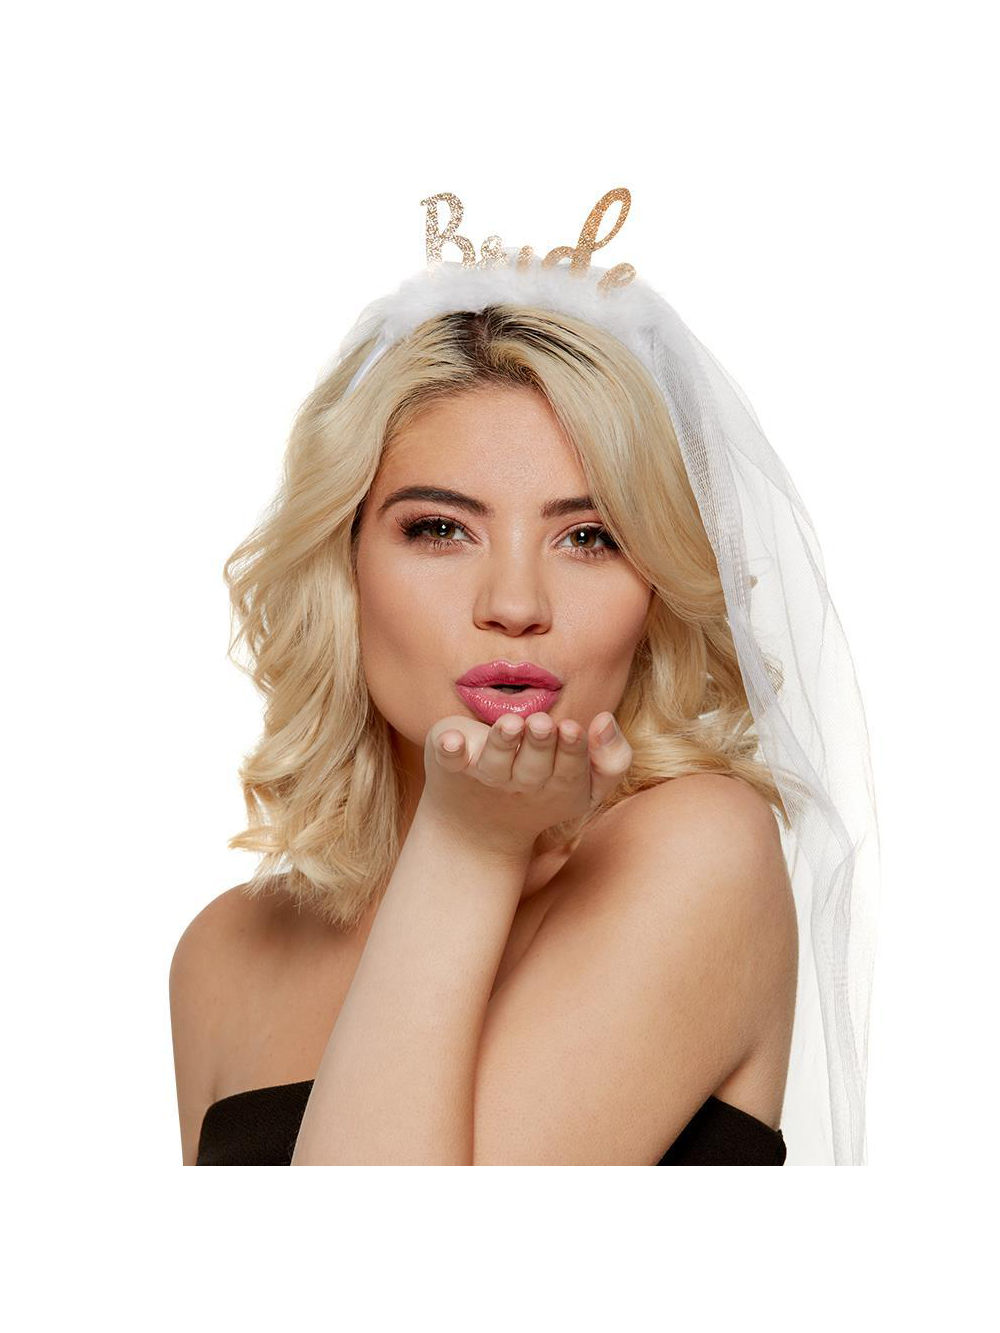 Bride Headband with attached Veil - Hen Party Accessories from Hen Party  Superstore UK ddb73e7c831